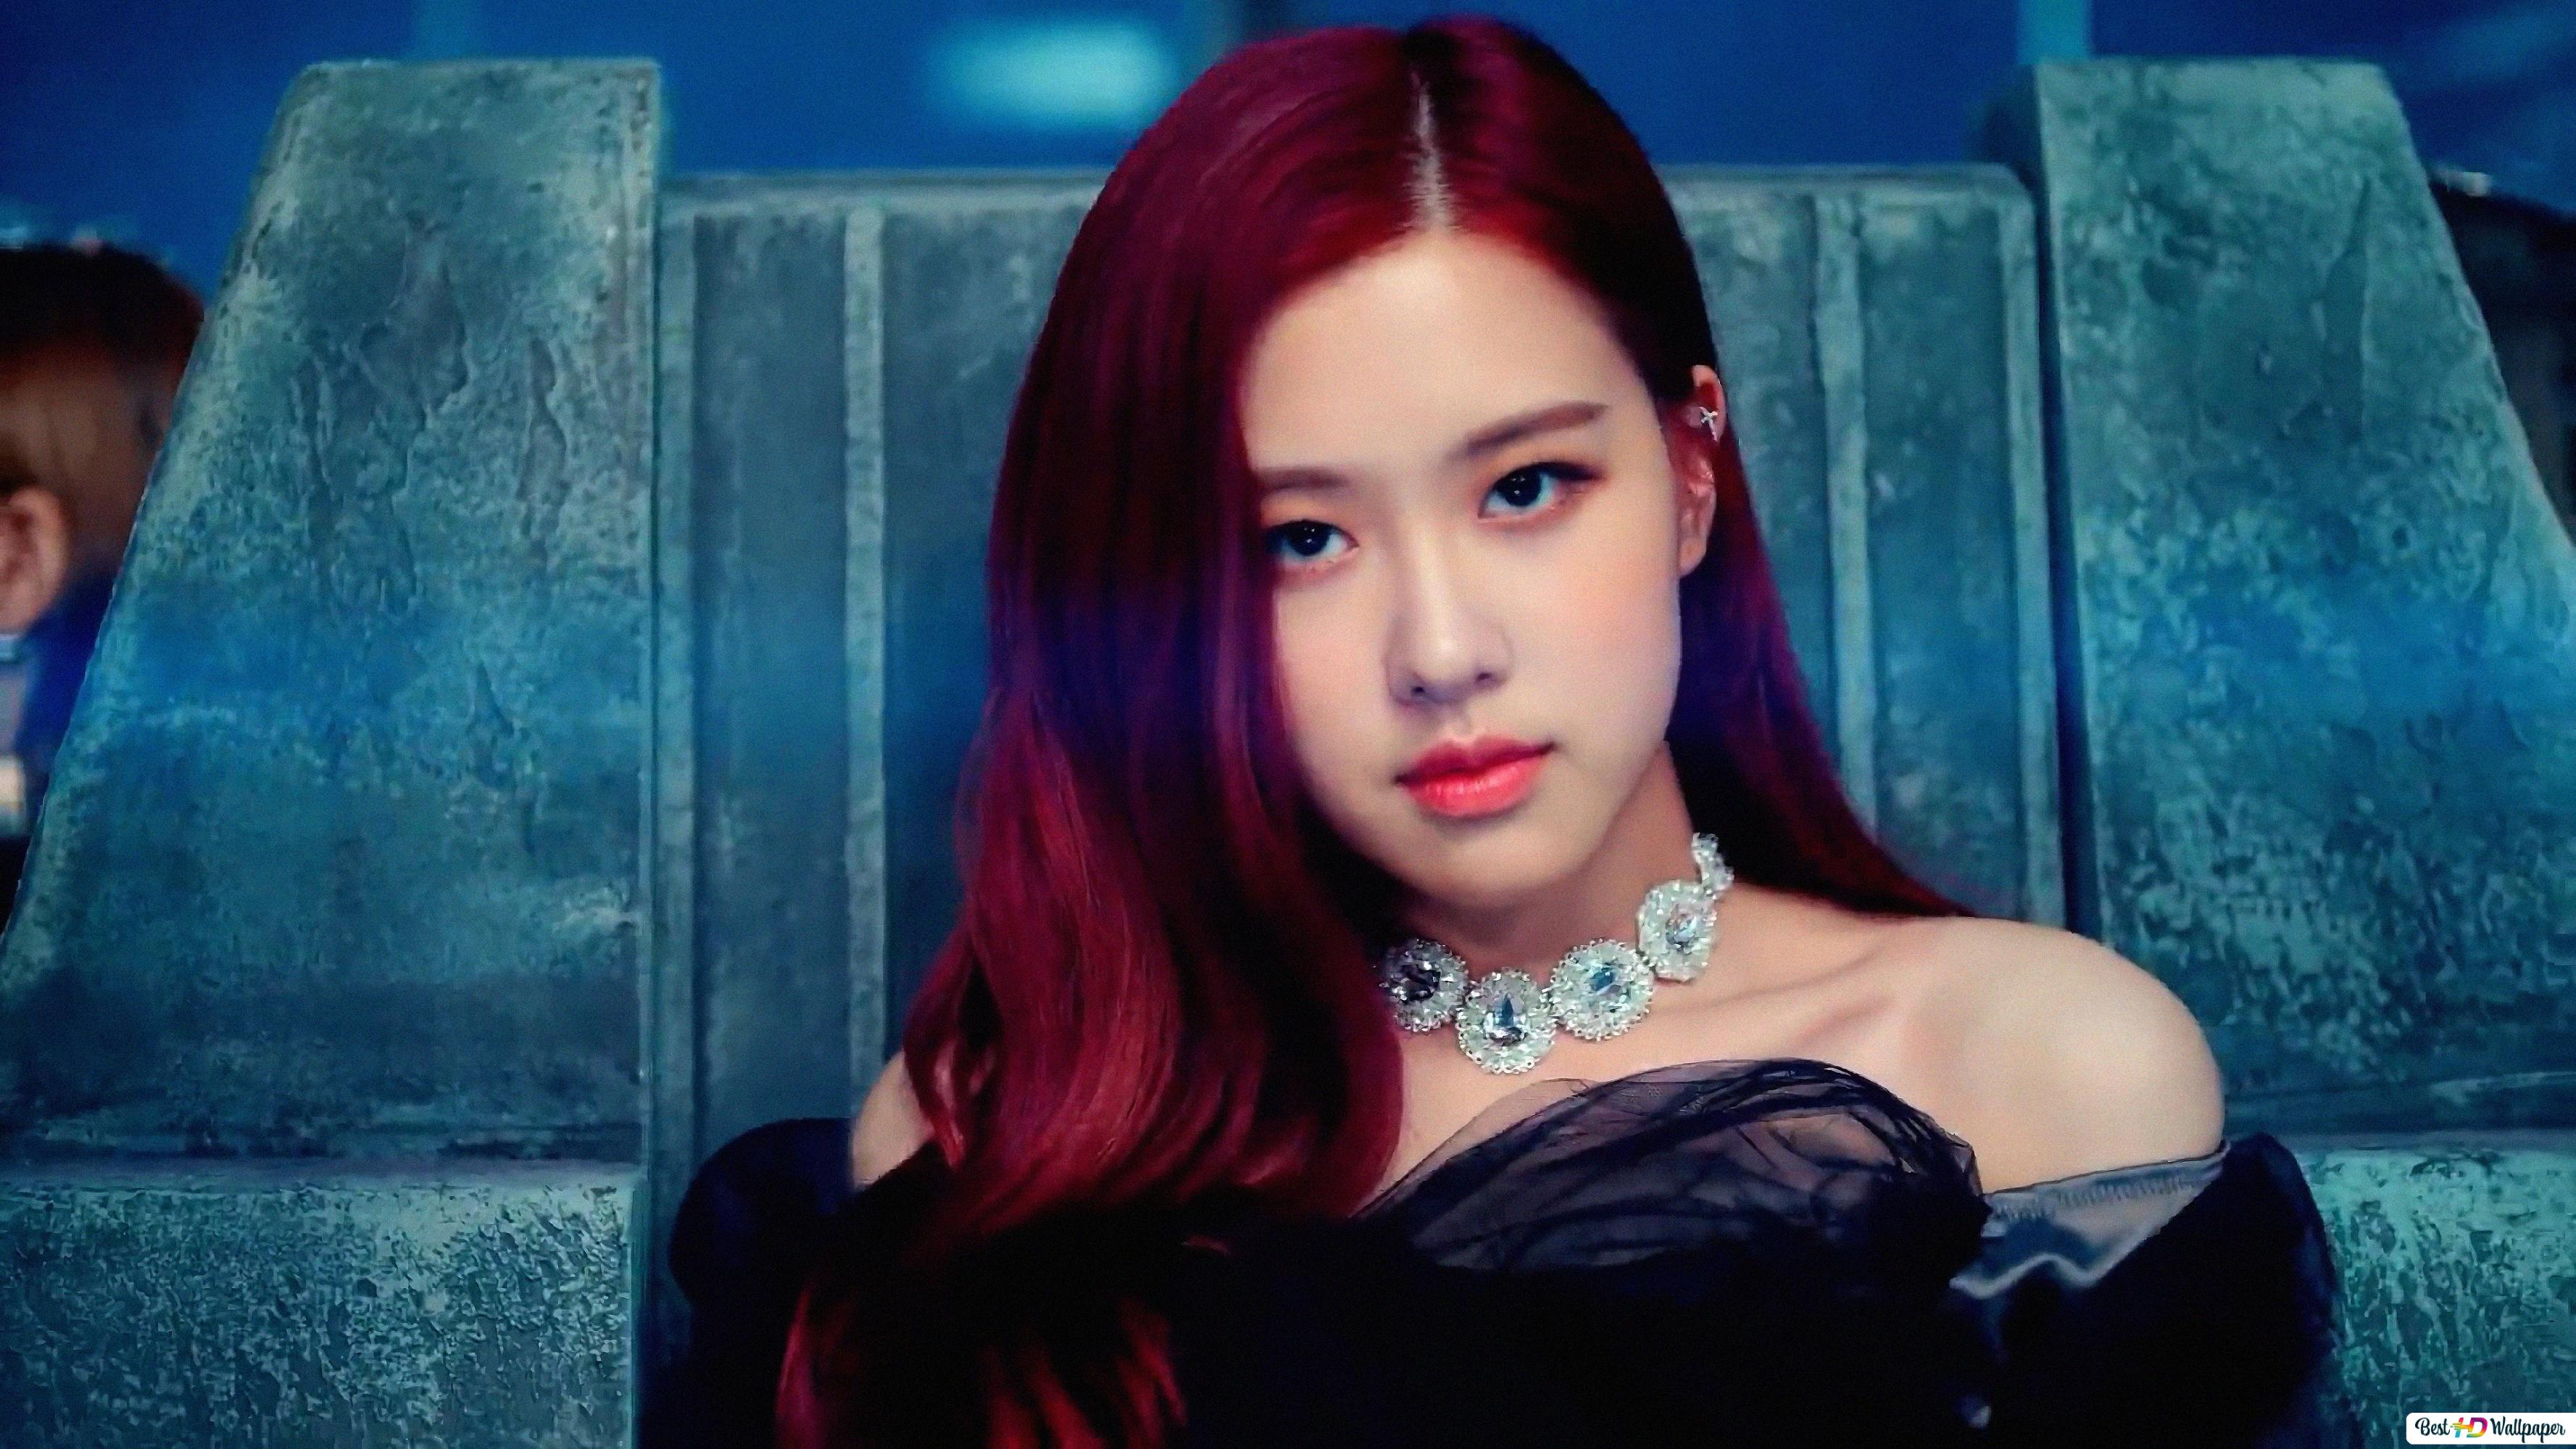 Gorgeous Rose From Blackpink Hd Wallpaper Download